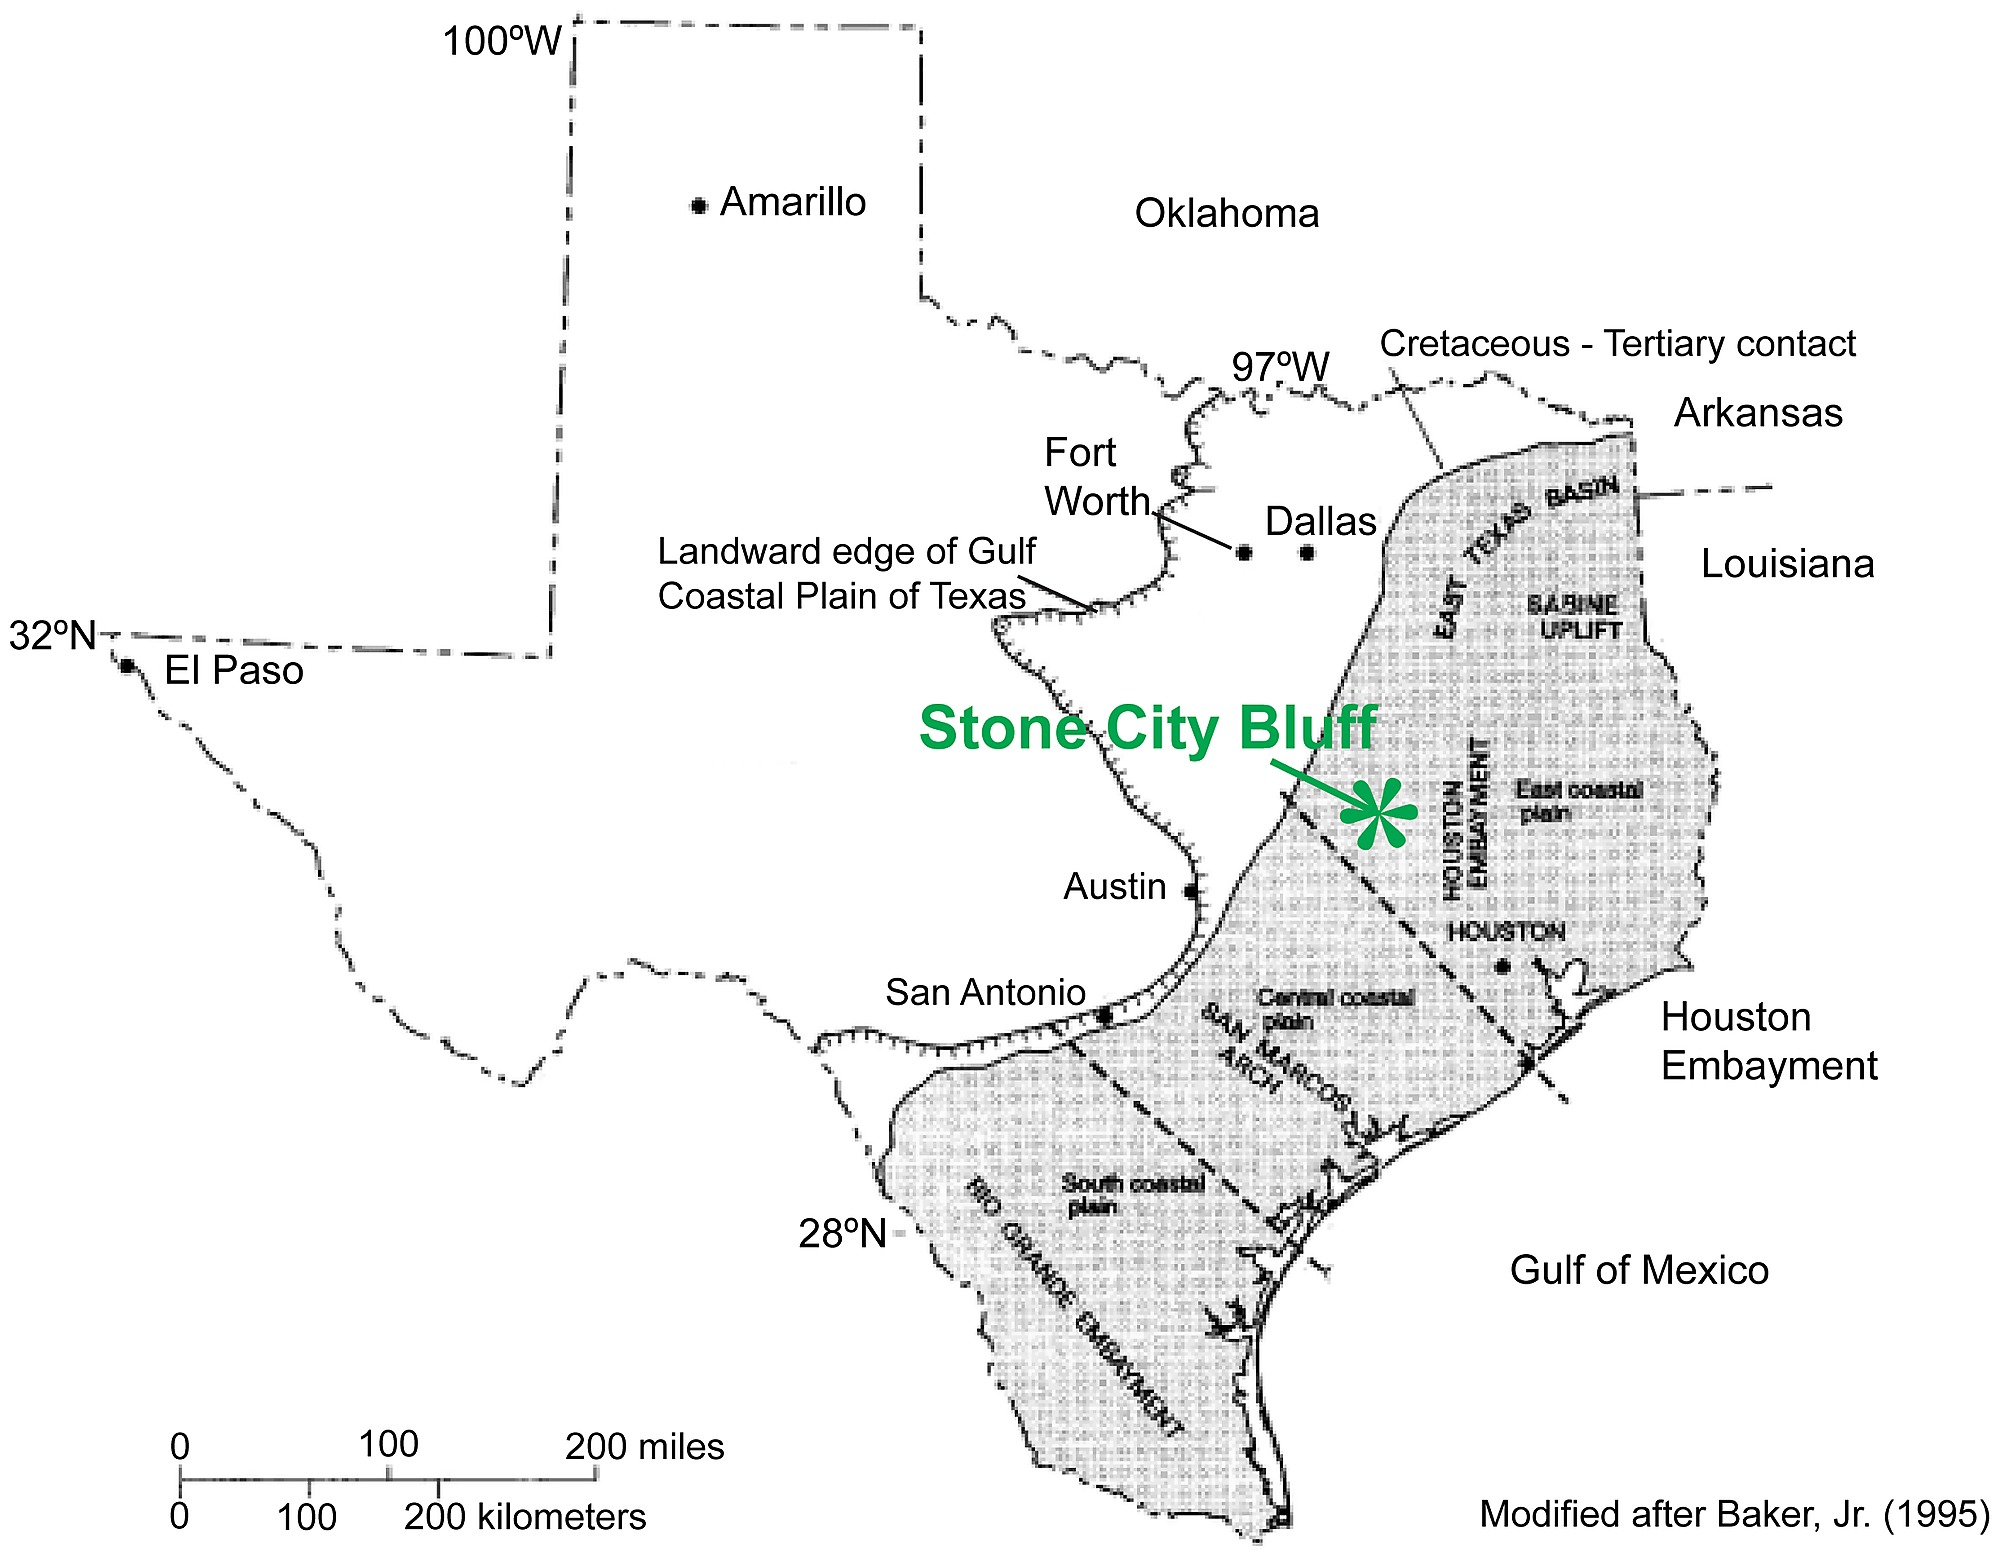 Location Of The Stone City Bluff Study Area On The Texas Gulf